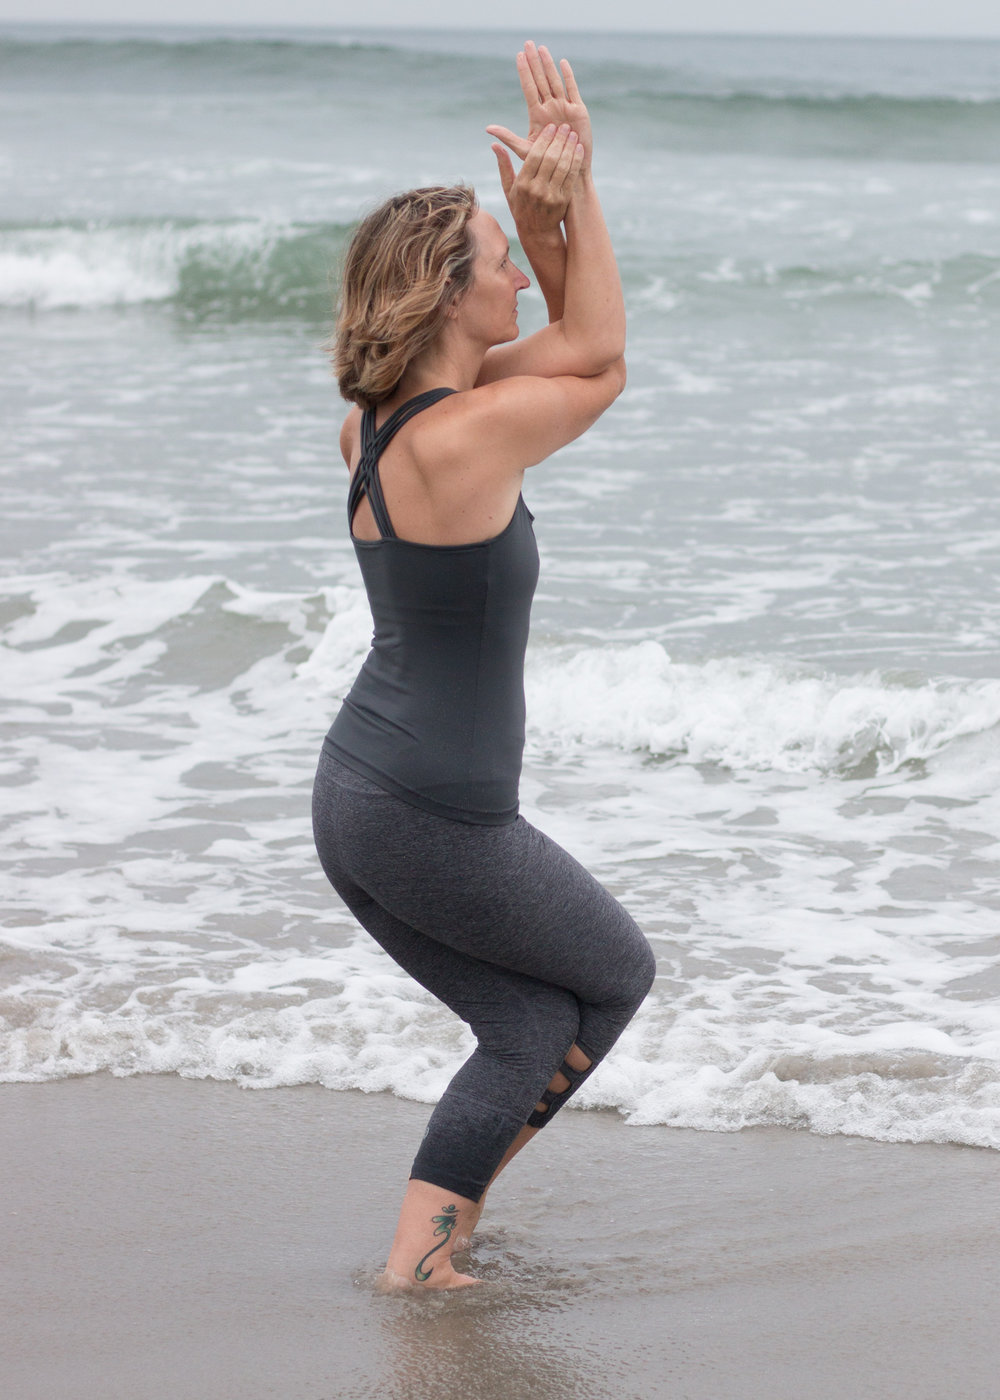 Yoga in Aqua Waves